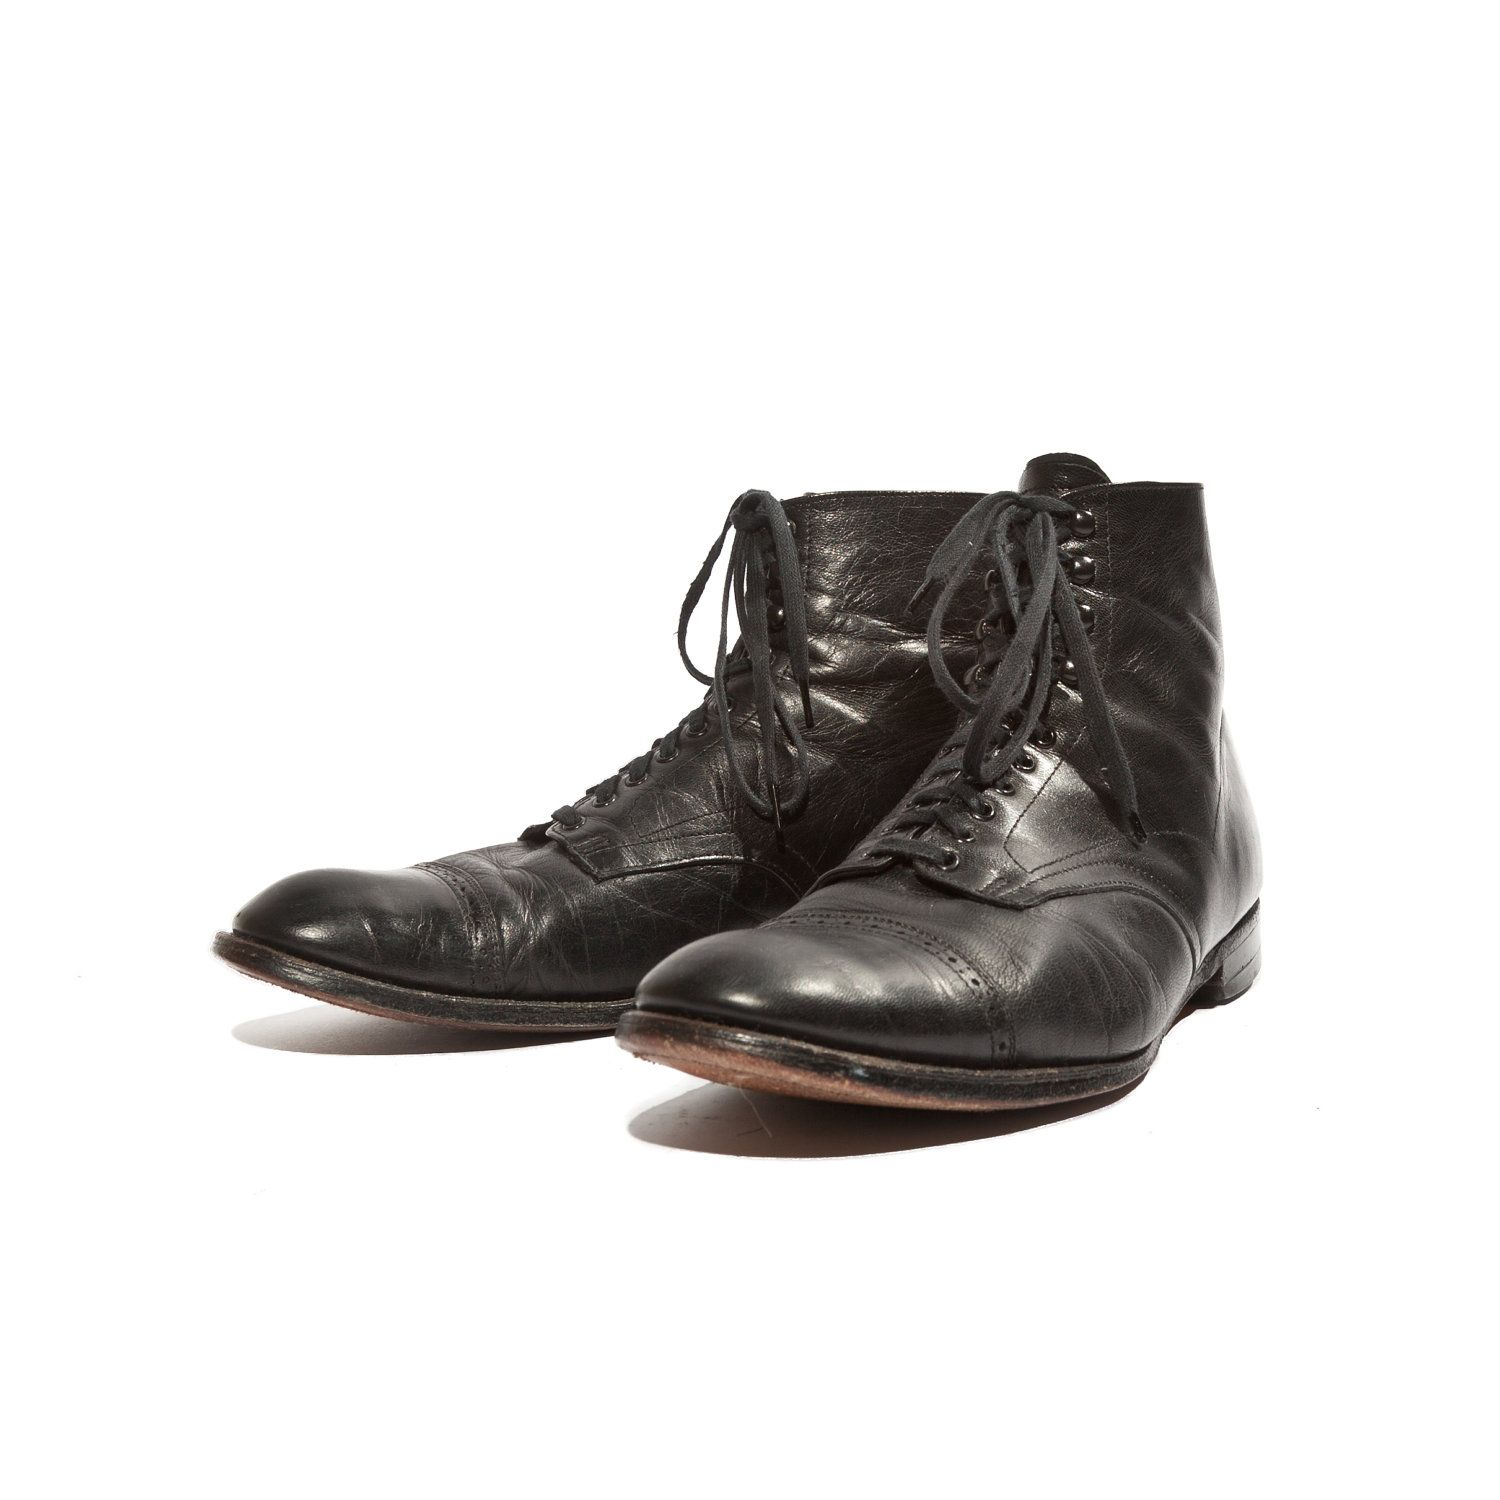 303f00a174e Vintage Stacy Adams Madison Boots Black Leather Cap Toe Brogue Ankle ...